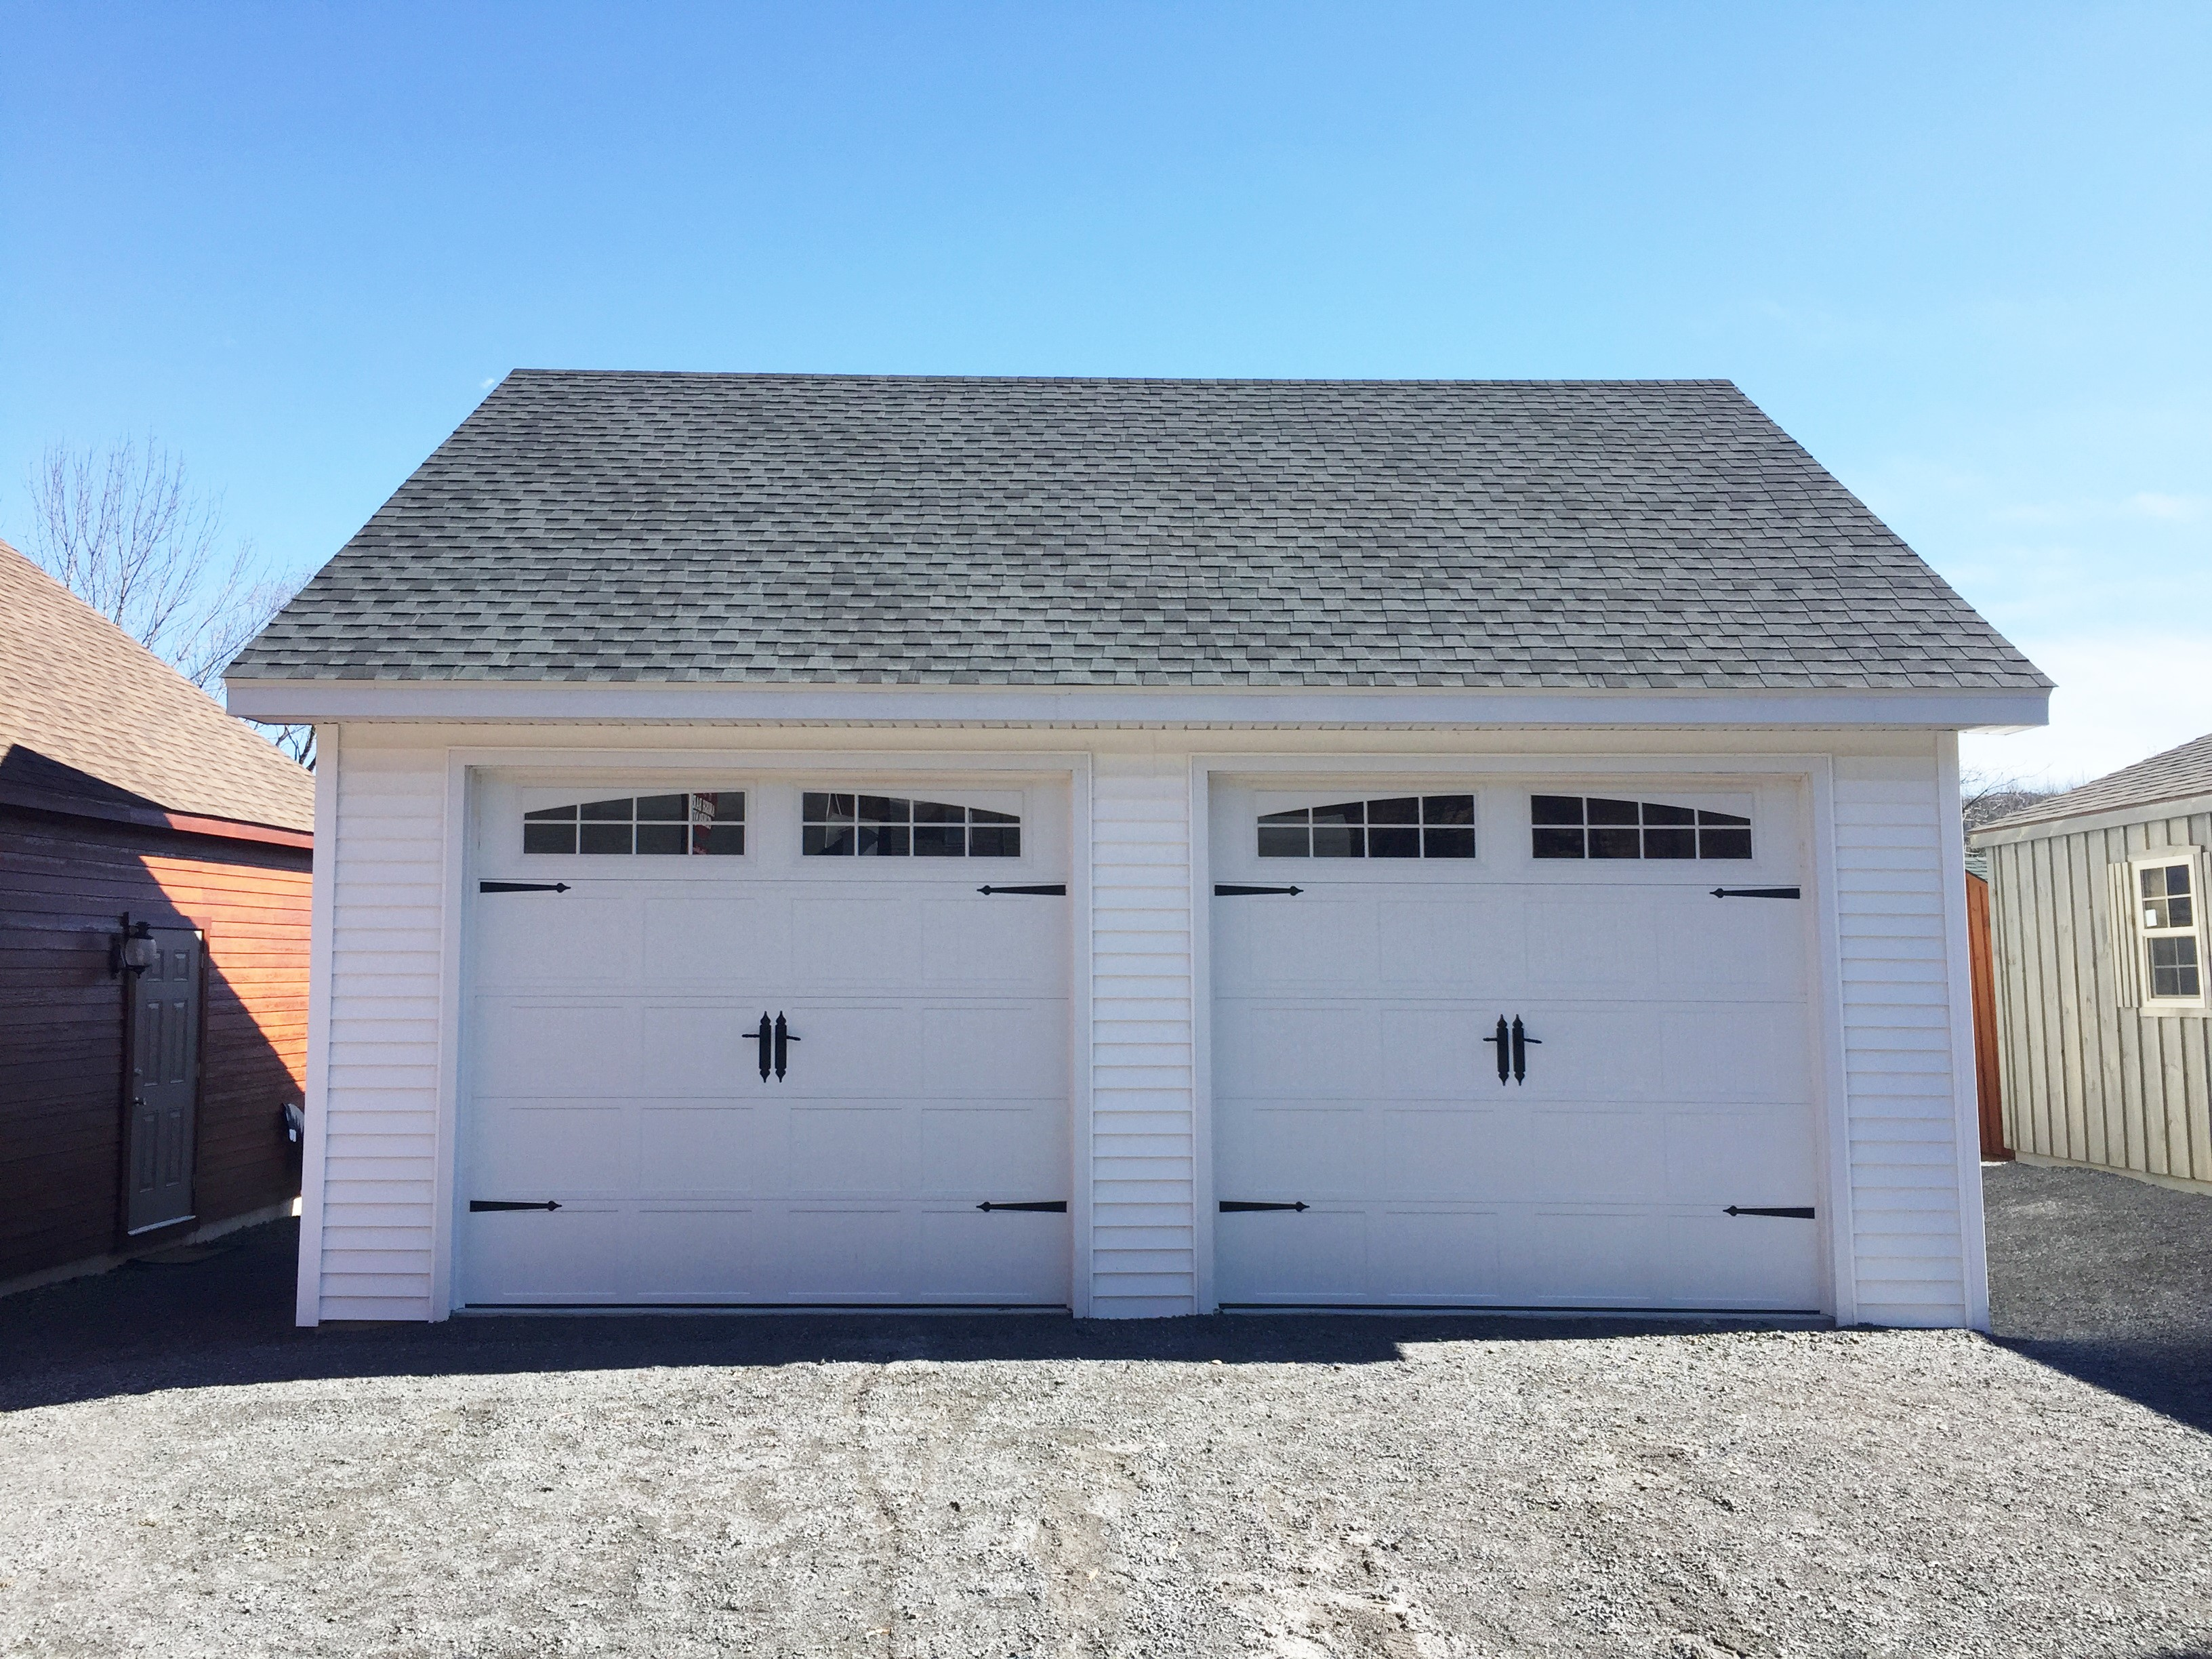 1 Car Garages Amish : Built on site custom amish garages in oneonta ny